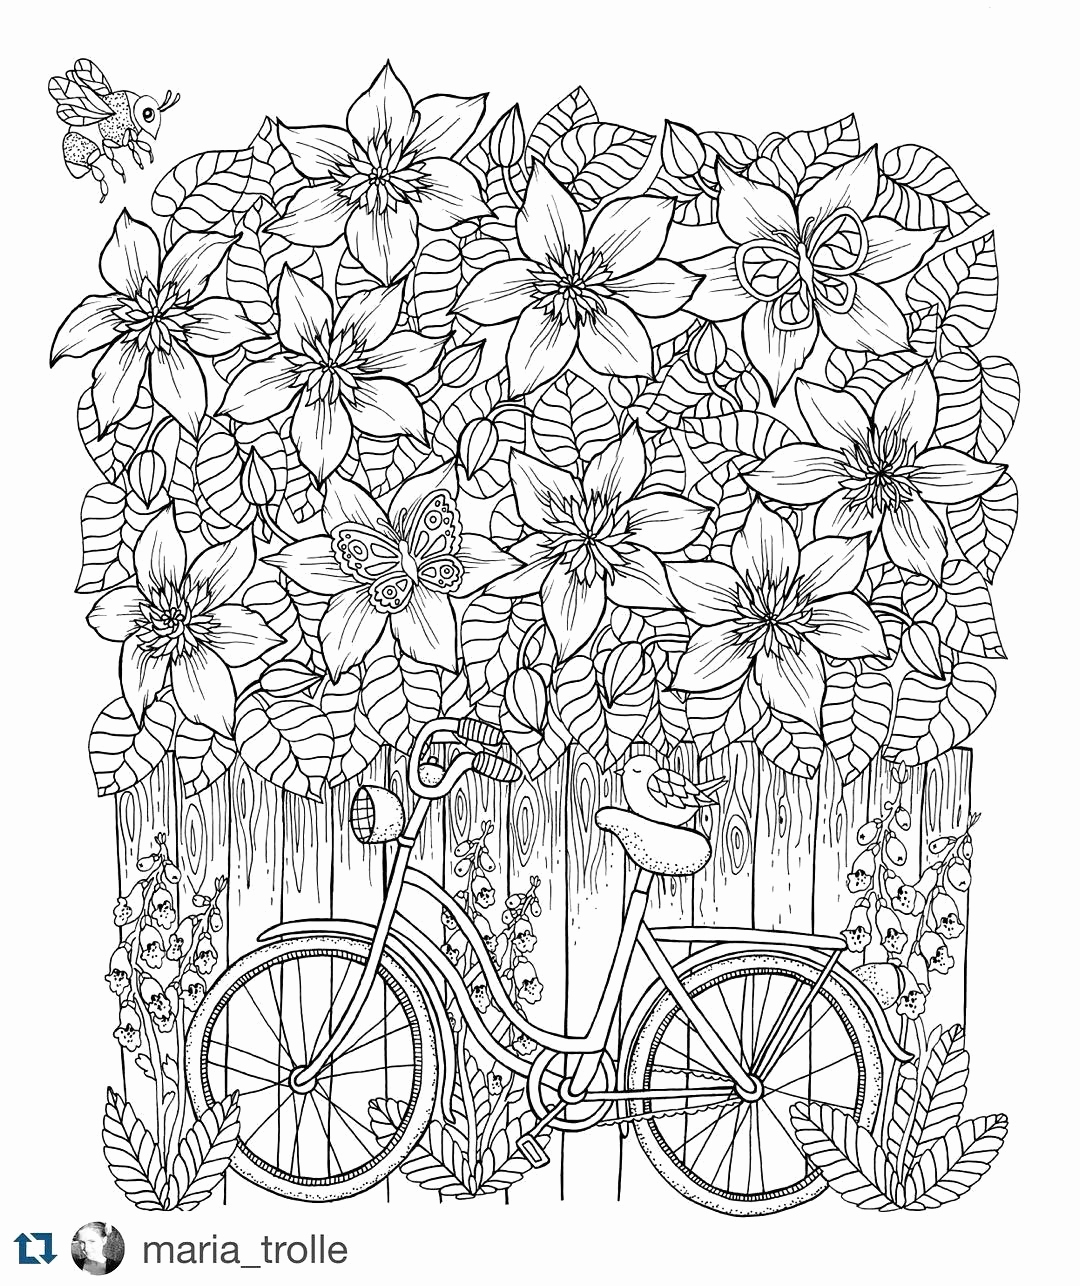 coloring pages bookmarks Collection-Free Printable Coloring Bookmarks Fresh Bookmarks Coloring Pages Heathermarxgallery 12-a